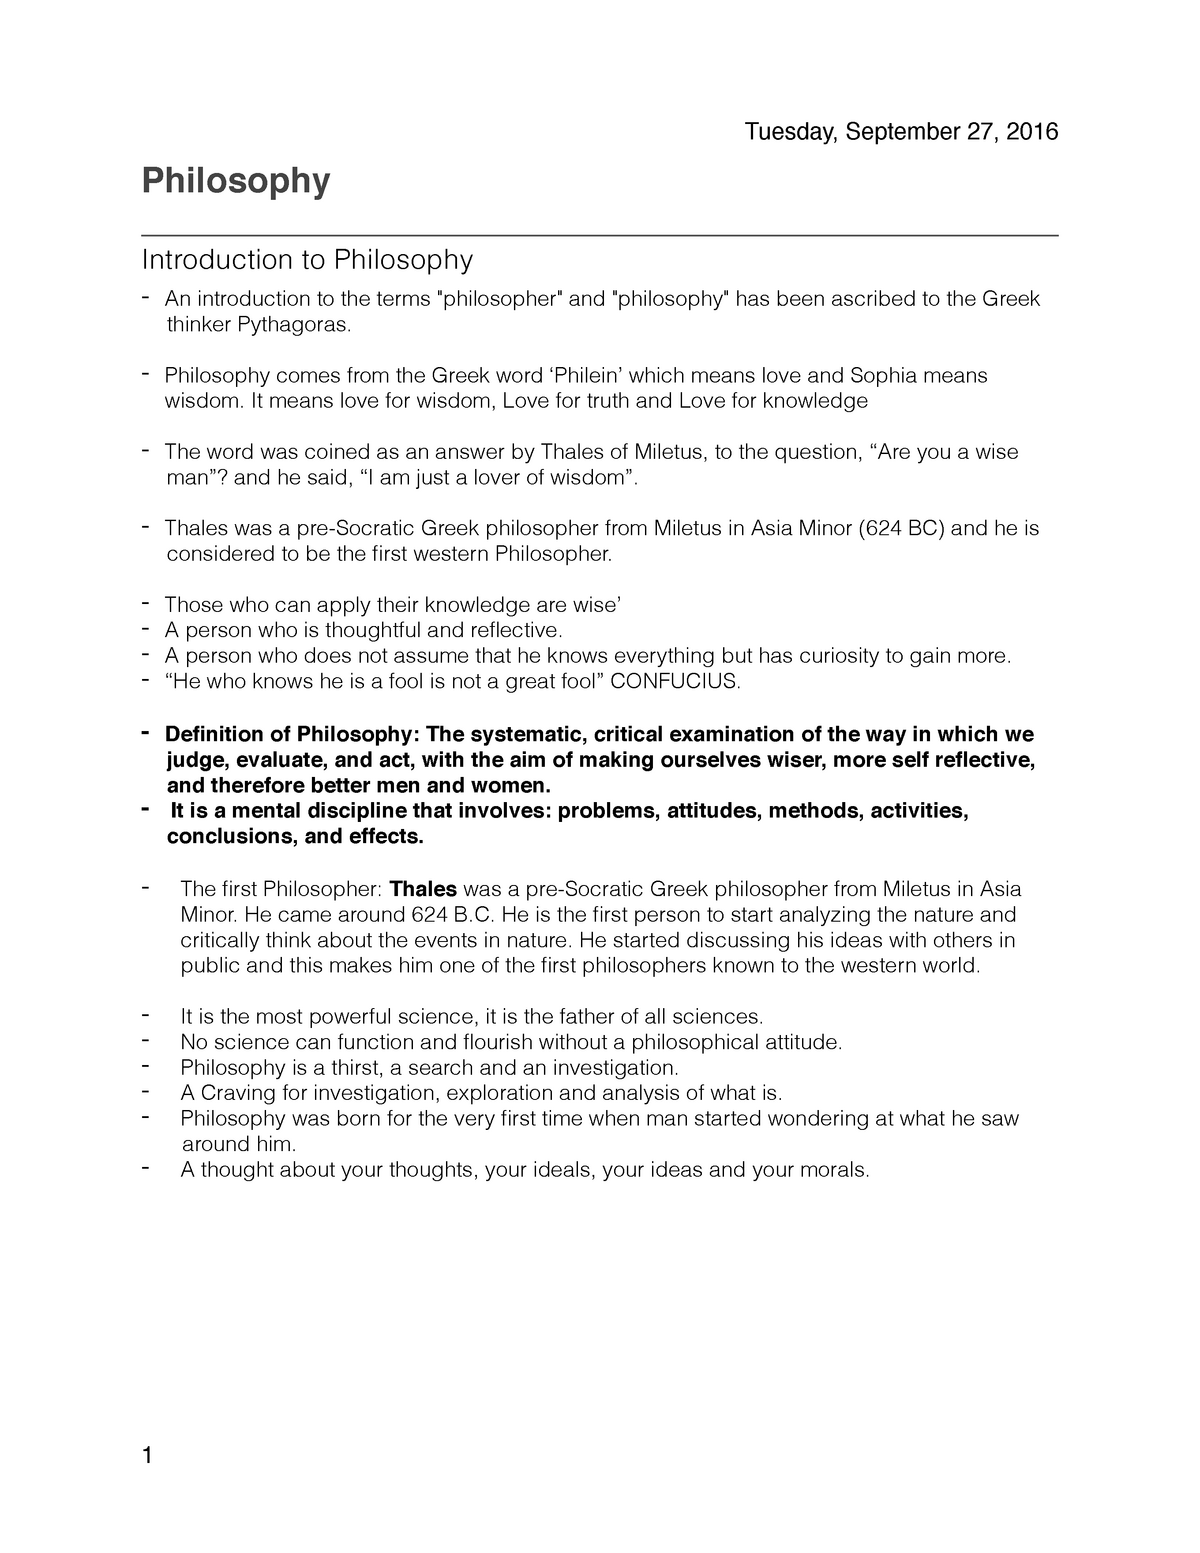 Philosophy Notes - PHIL 4: Introduction to Philosophy - StuDocu